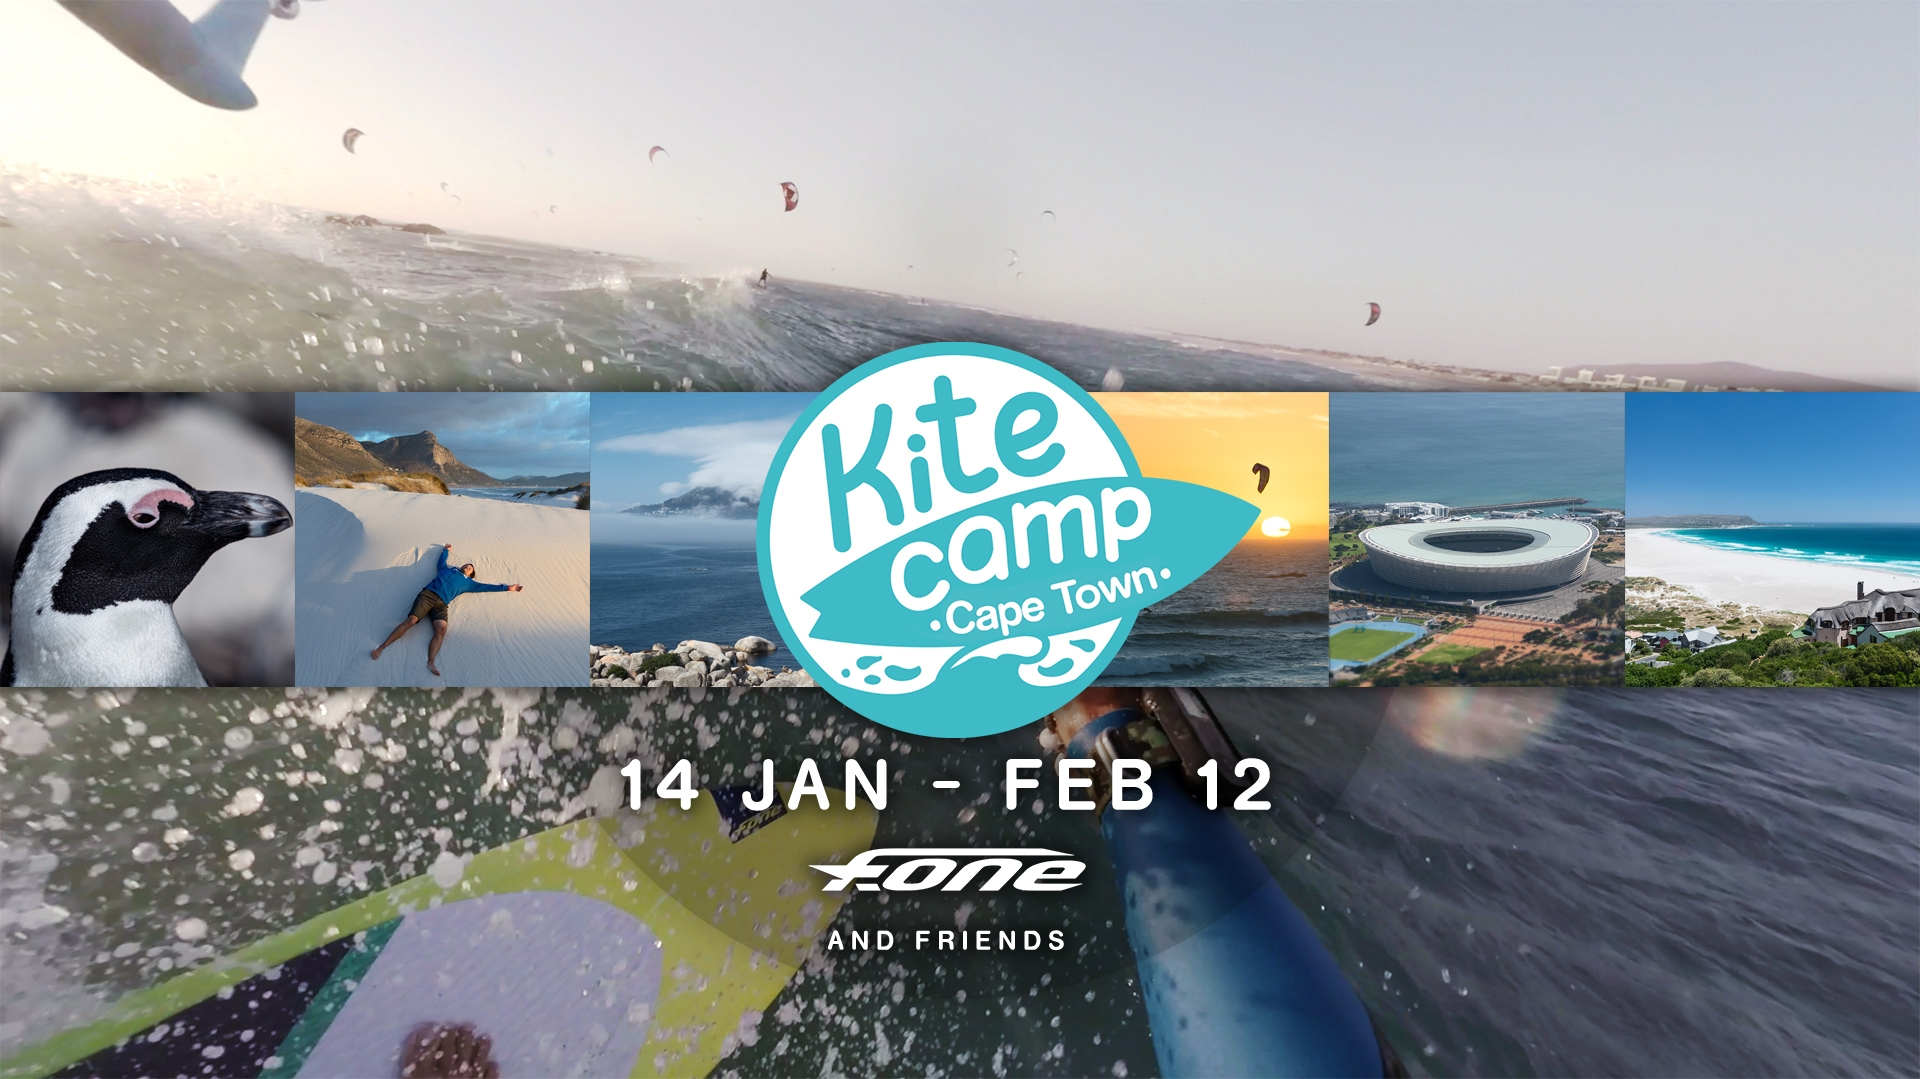 Cape Town Kite Camp